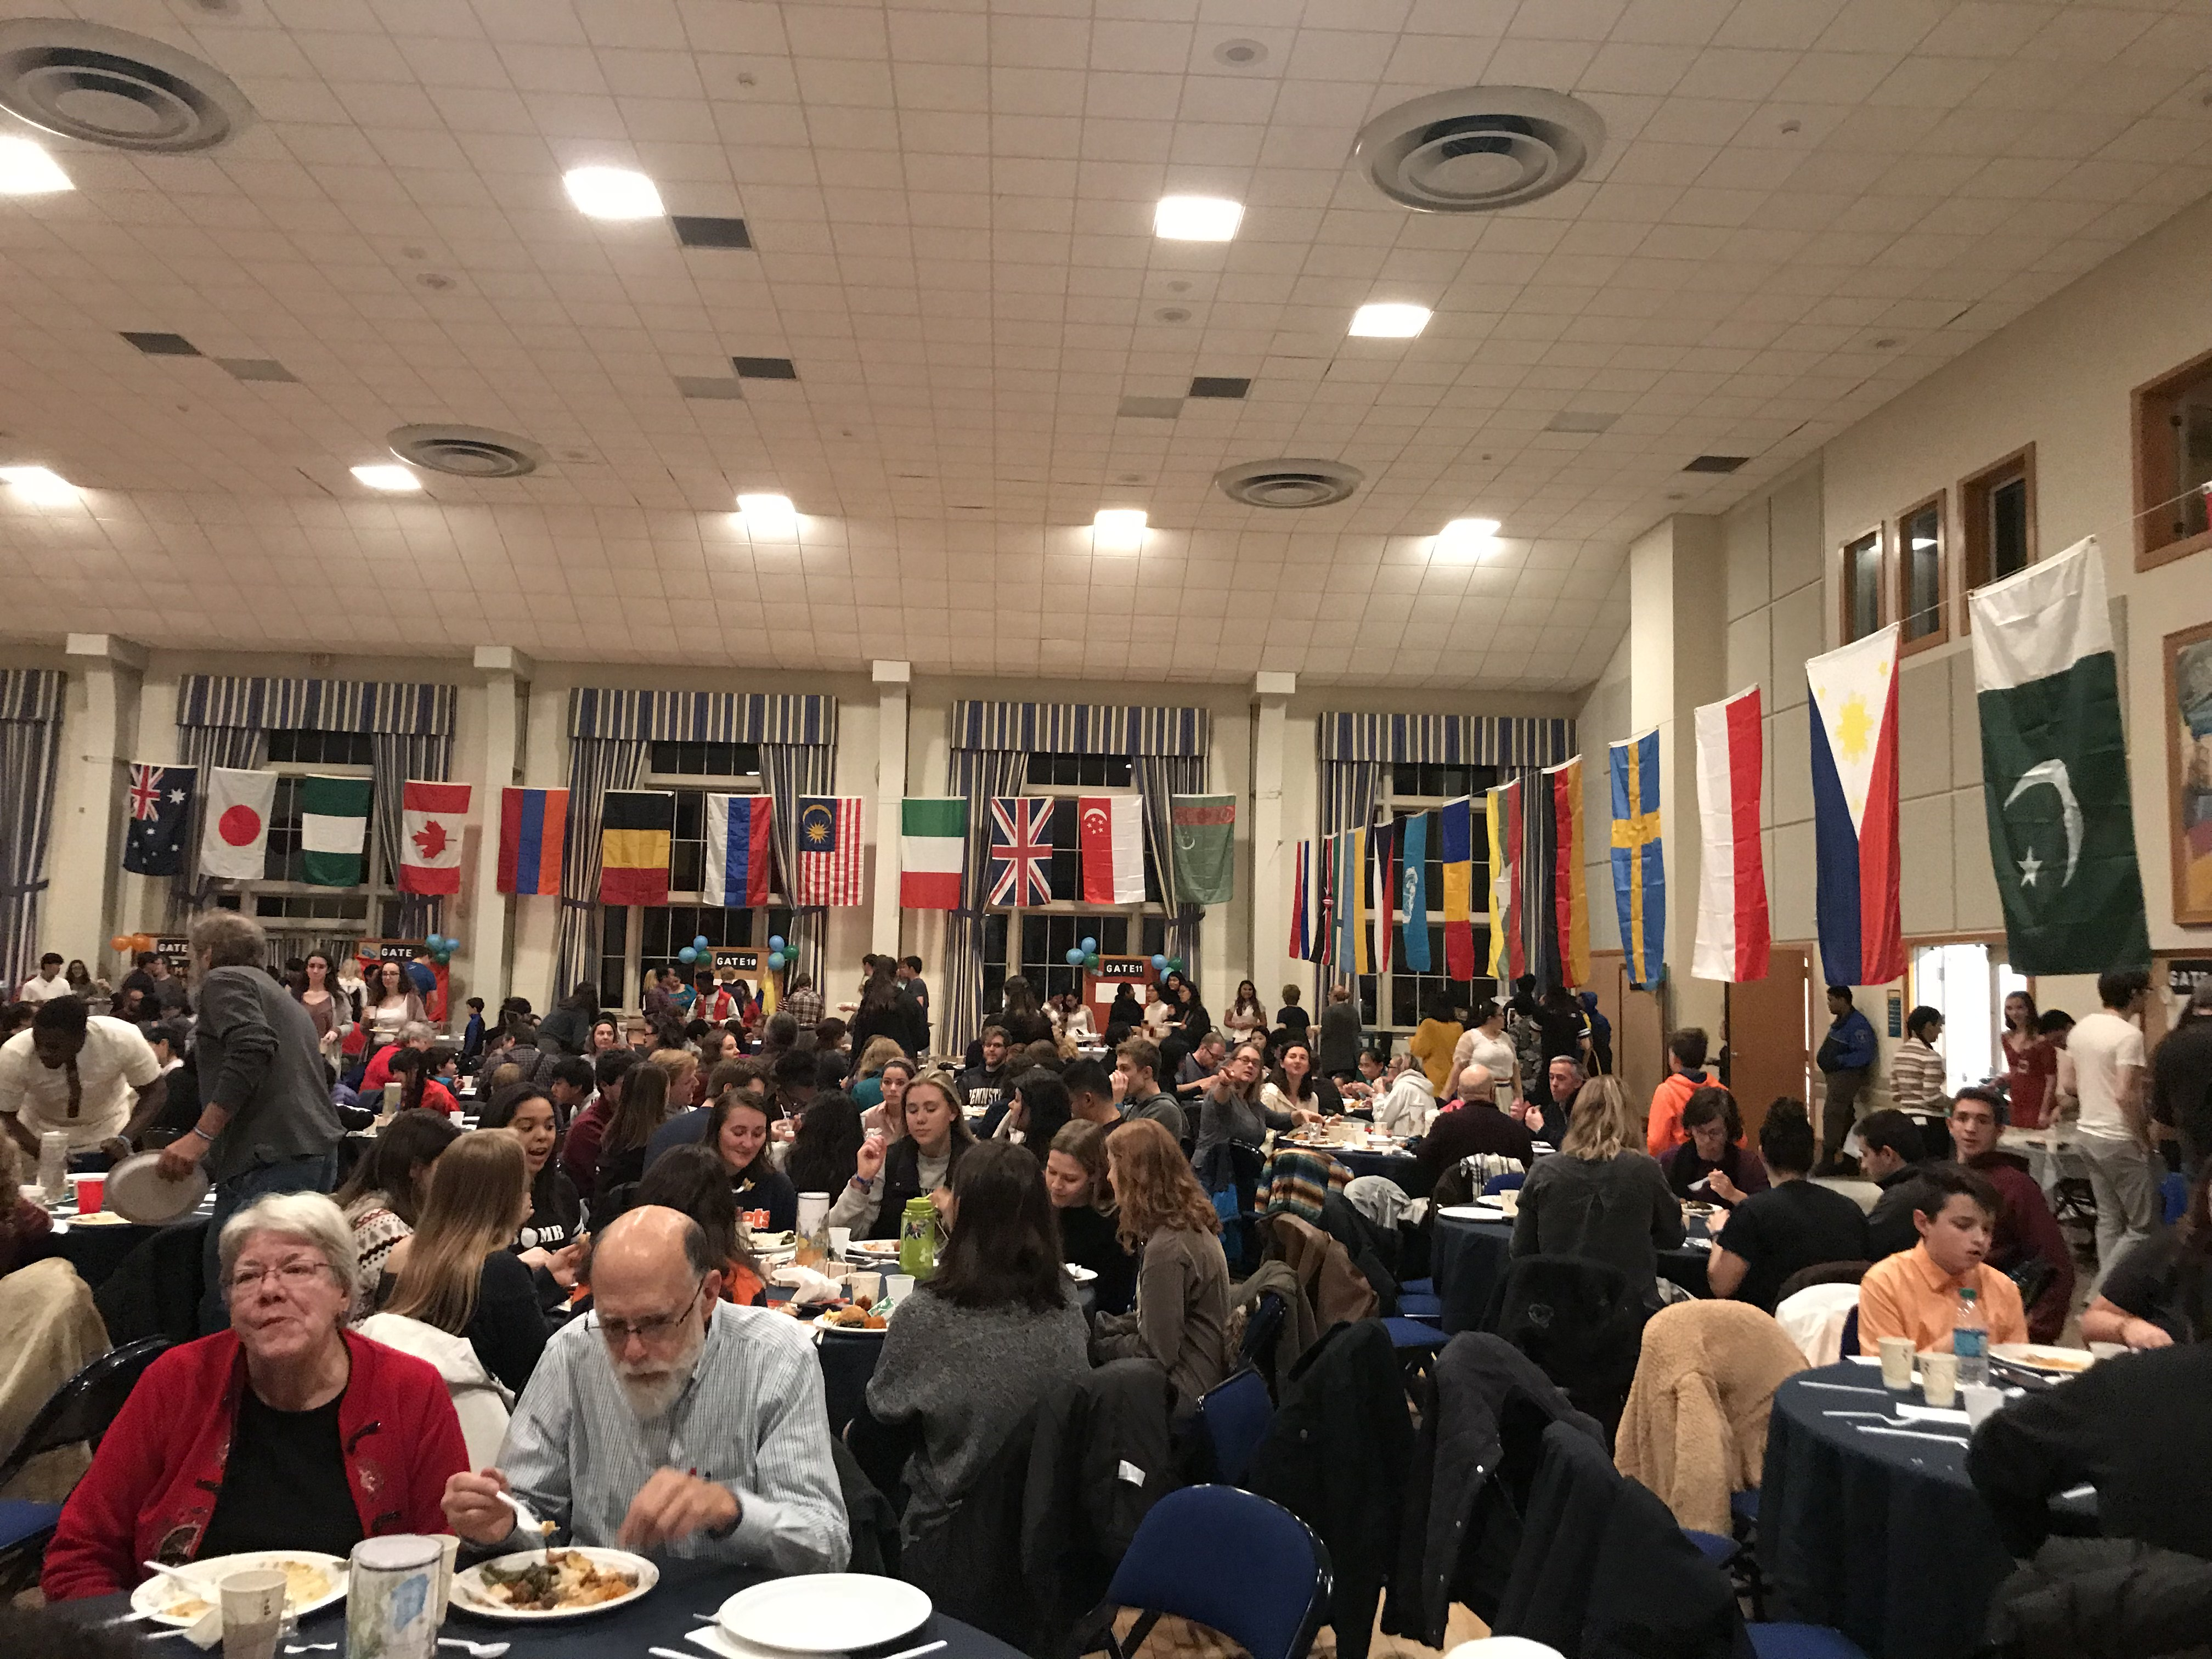 The CUB ballroom, decorated with multicultural flags, hosted a variety of cuisines and performances at this year's Burgburst (Photo Kyra Pfeiffer/The Gettysburgian).